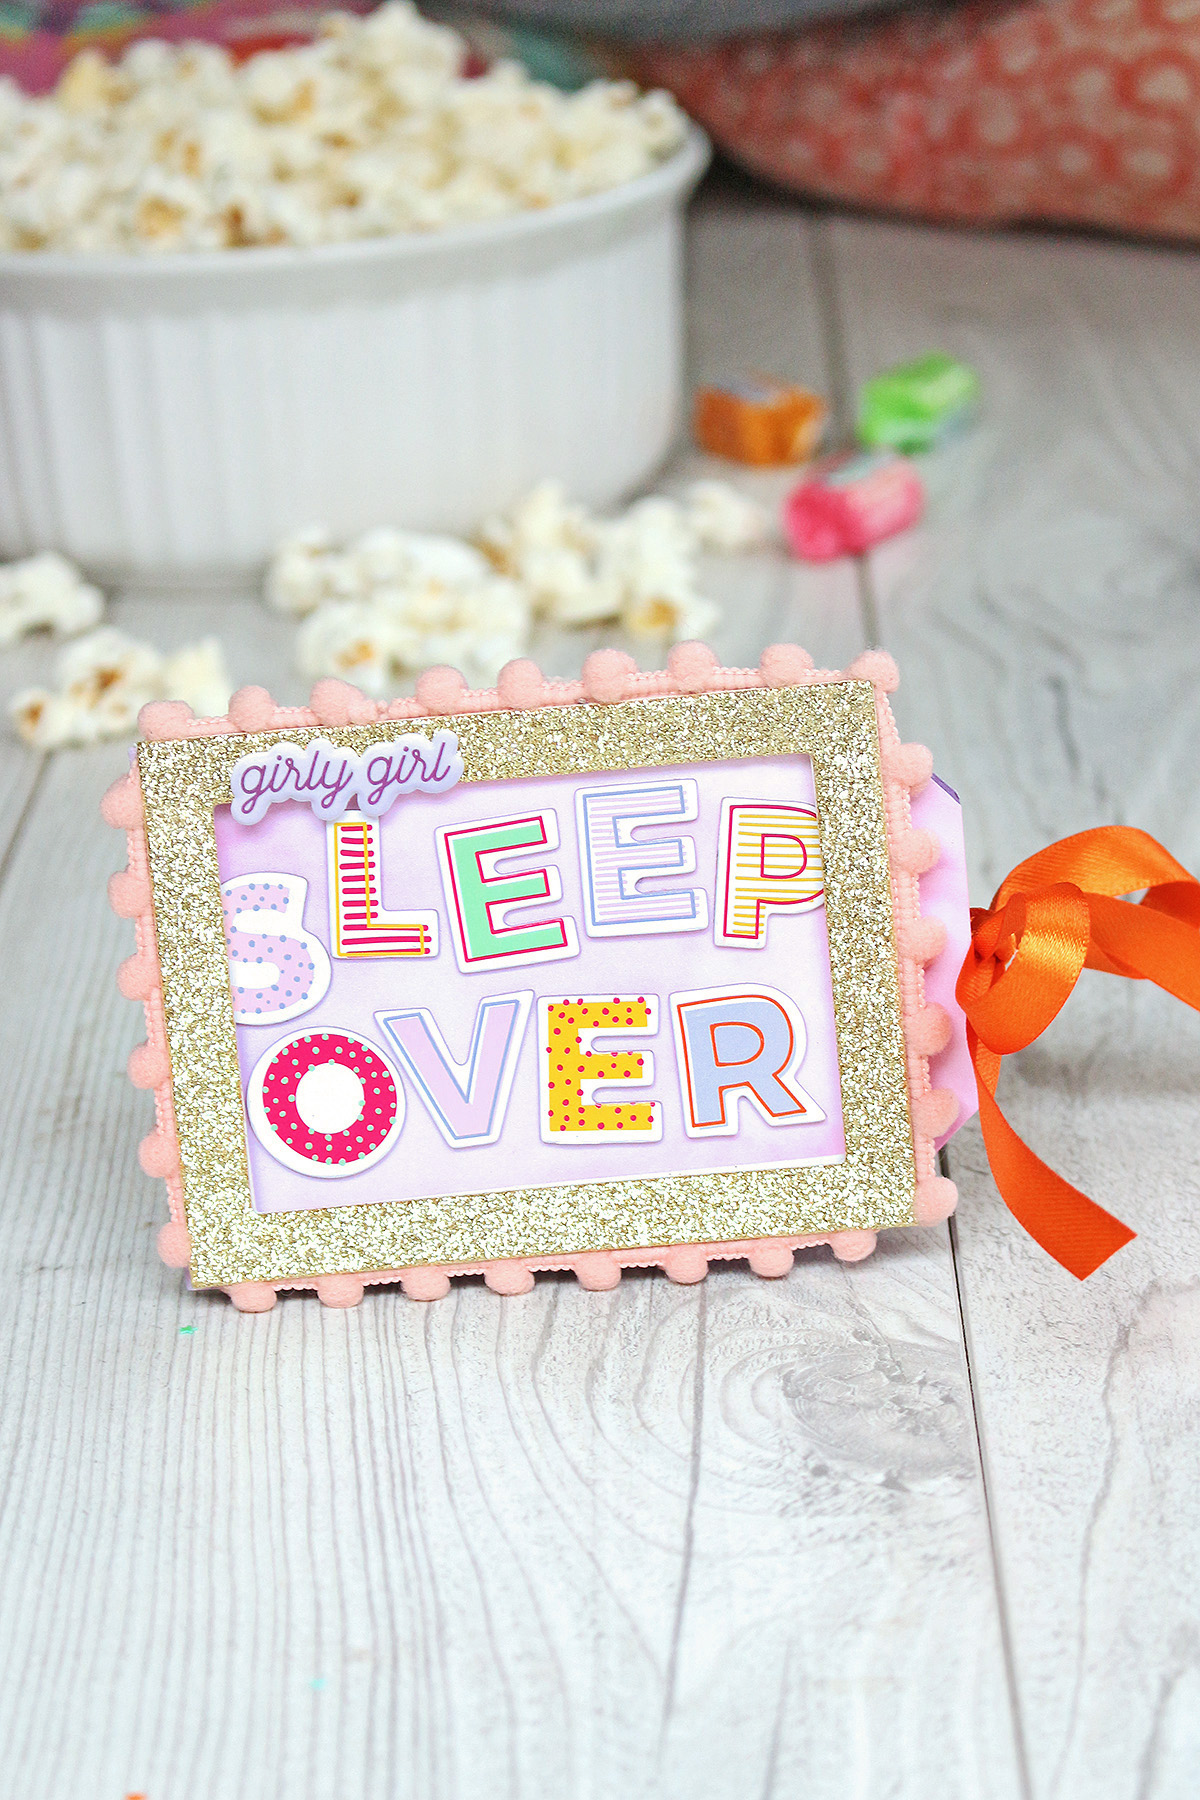 Slumber Party Invitation by Chantalle McDaniel for We R Memory Keepers